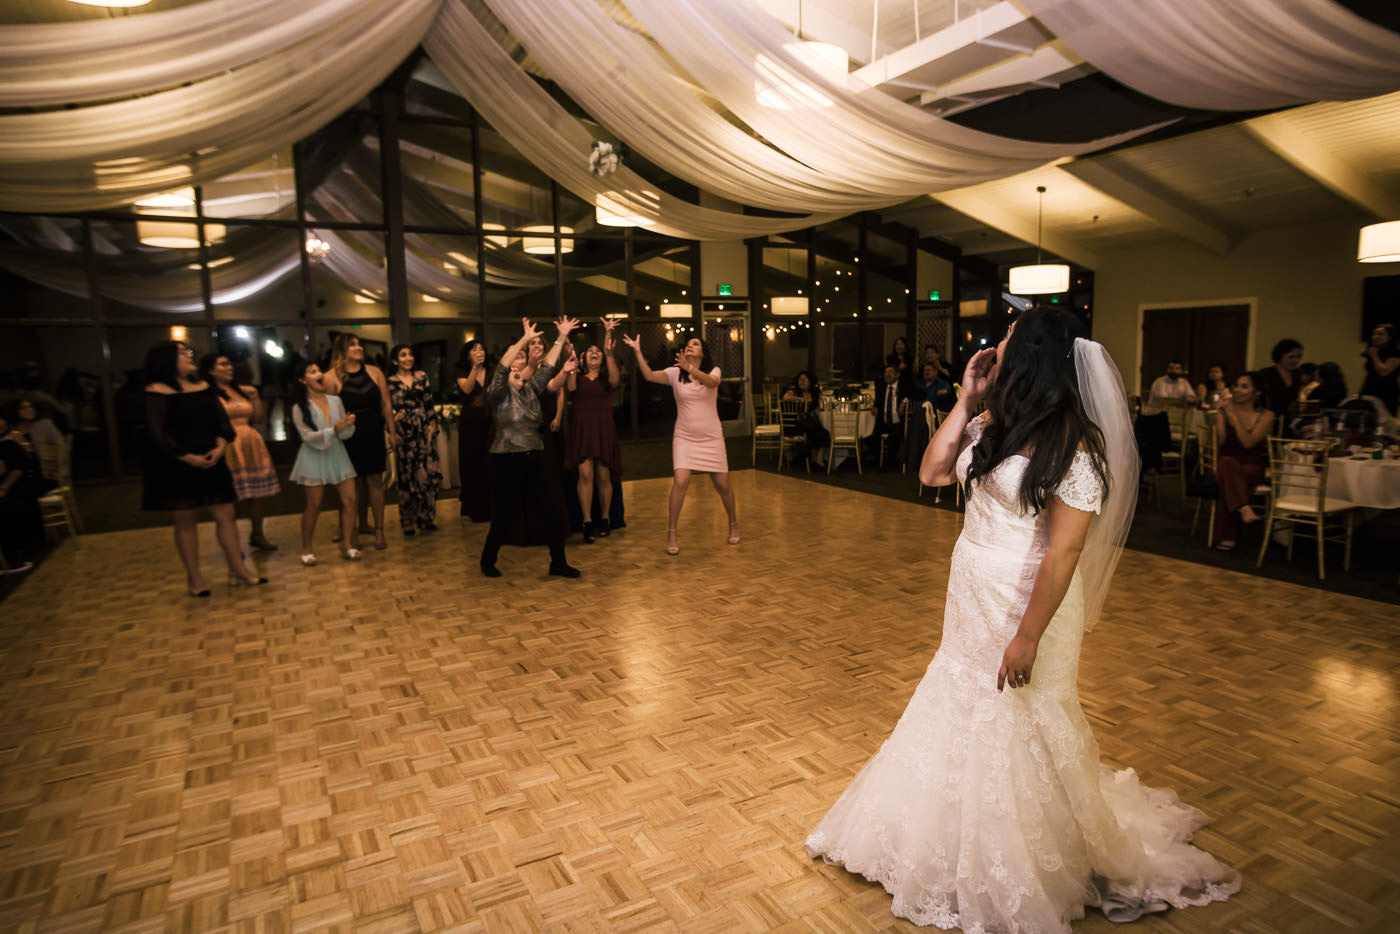 Bride throws weddign bouquet during reception at Knollwood Country Club wedding.